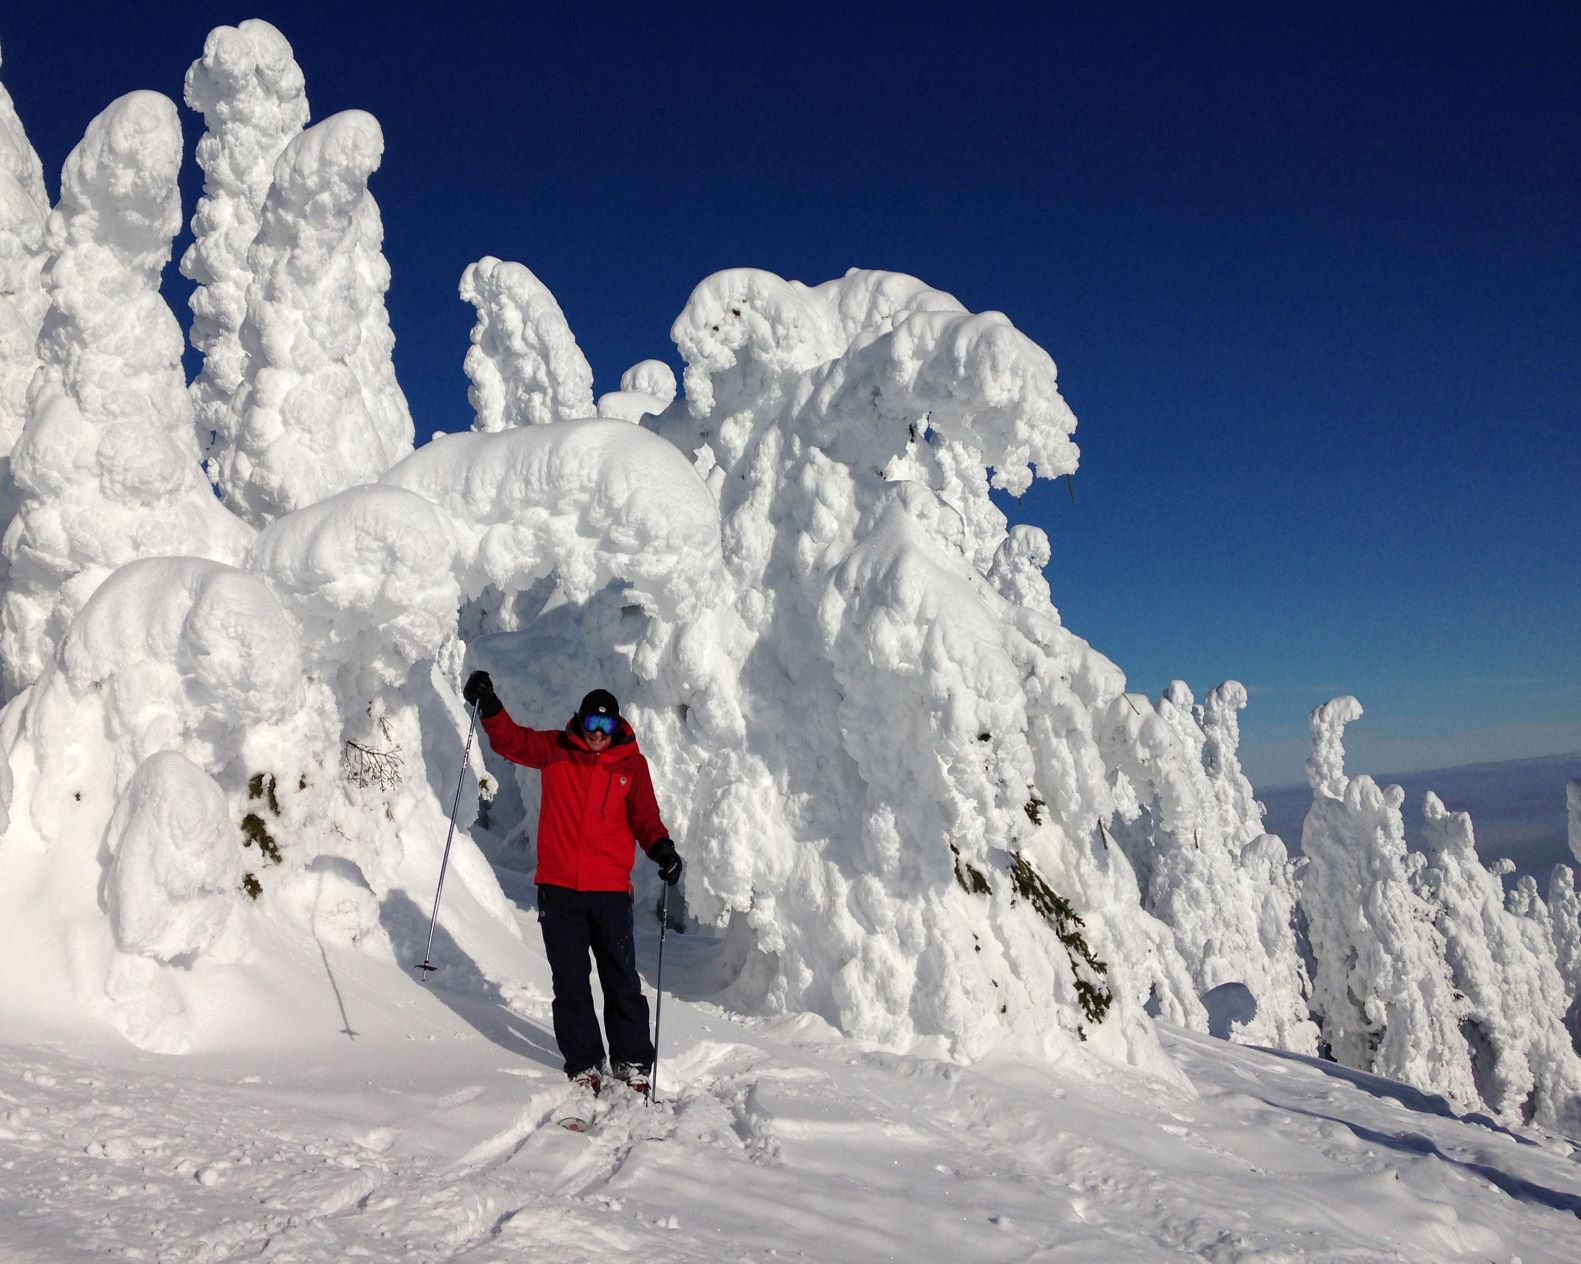 Bart Haggin in his ski gear, wearing a red jacket and black pants, on Mt. Spokane standing in front of snow-covered trees.